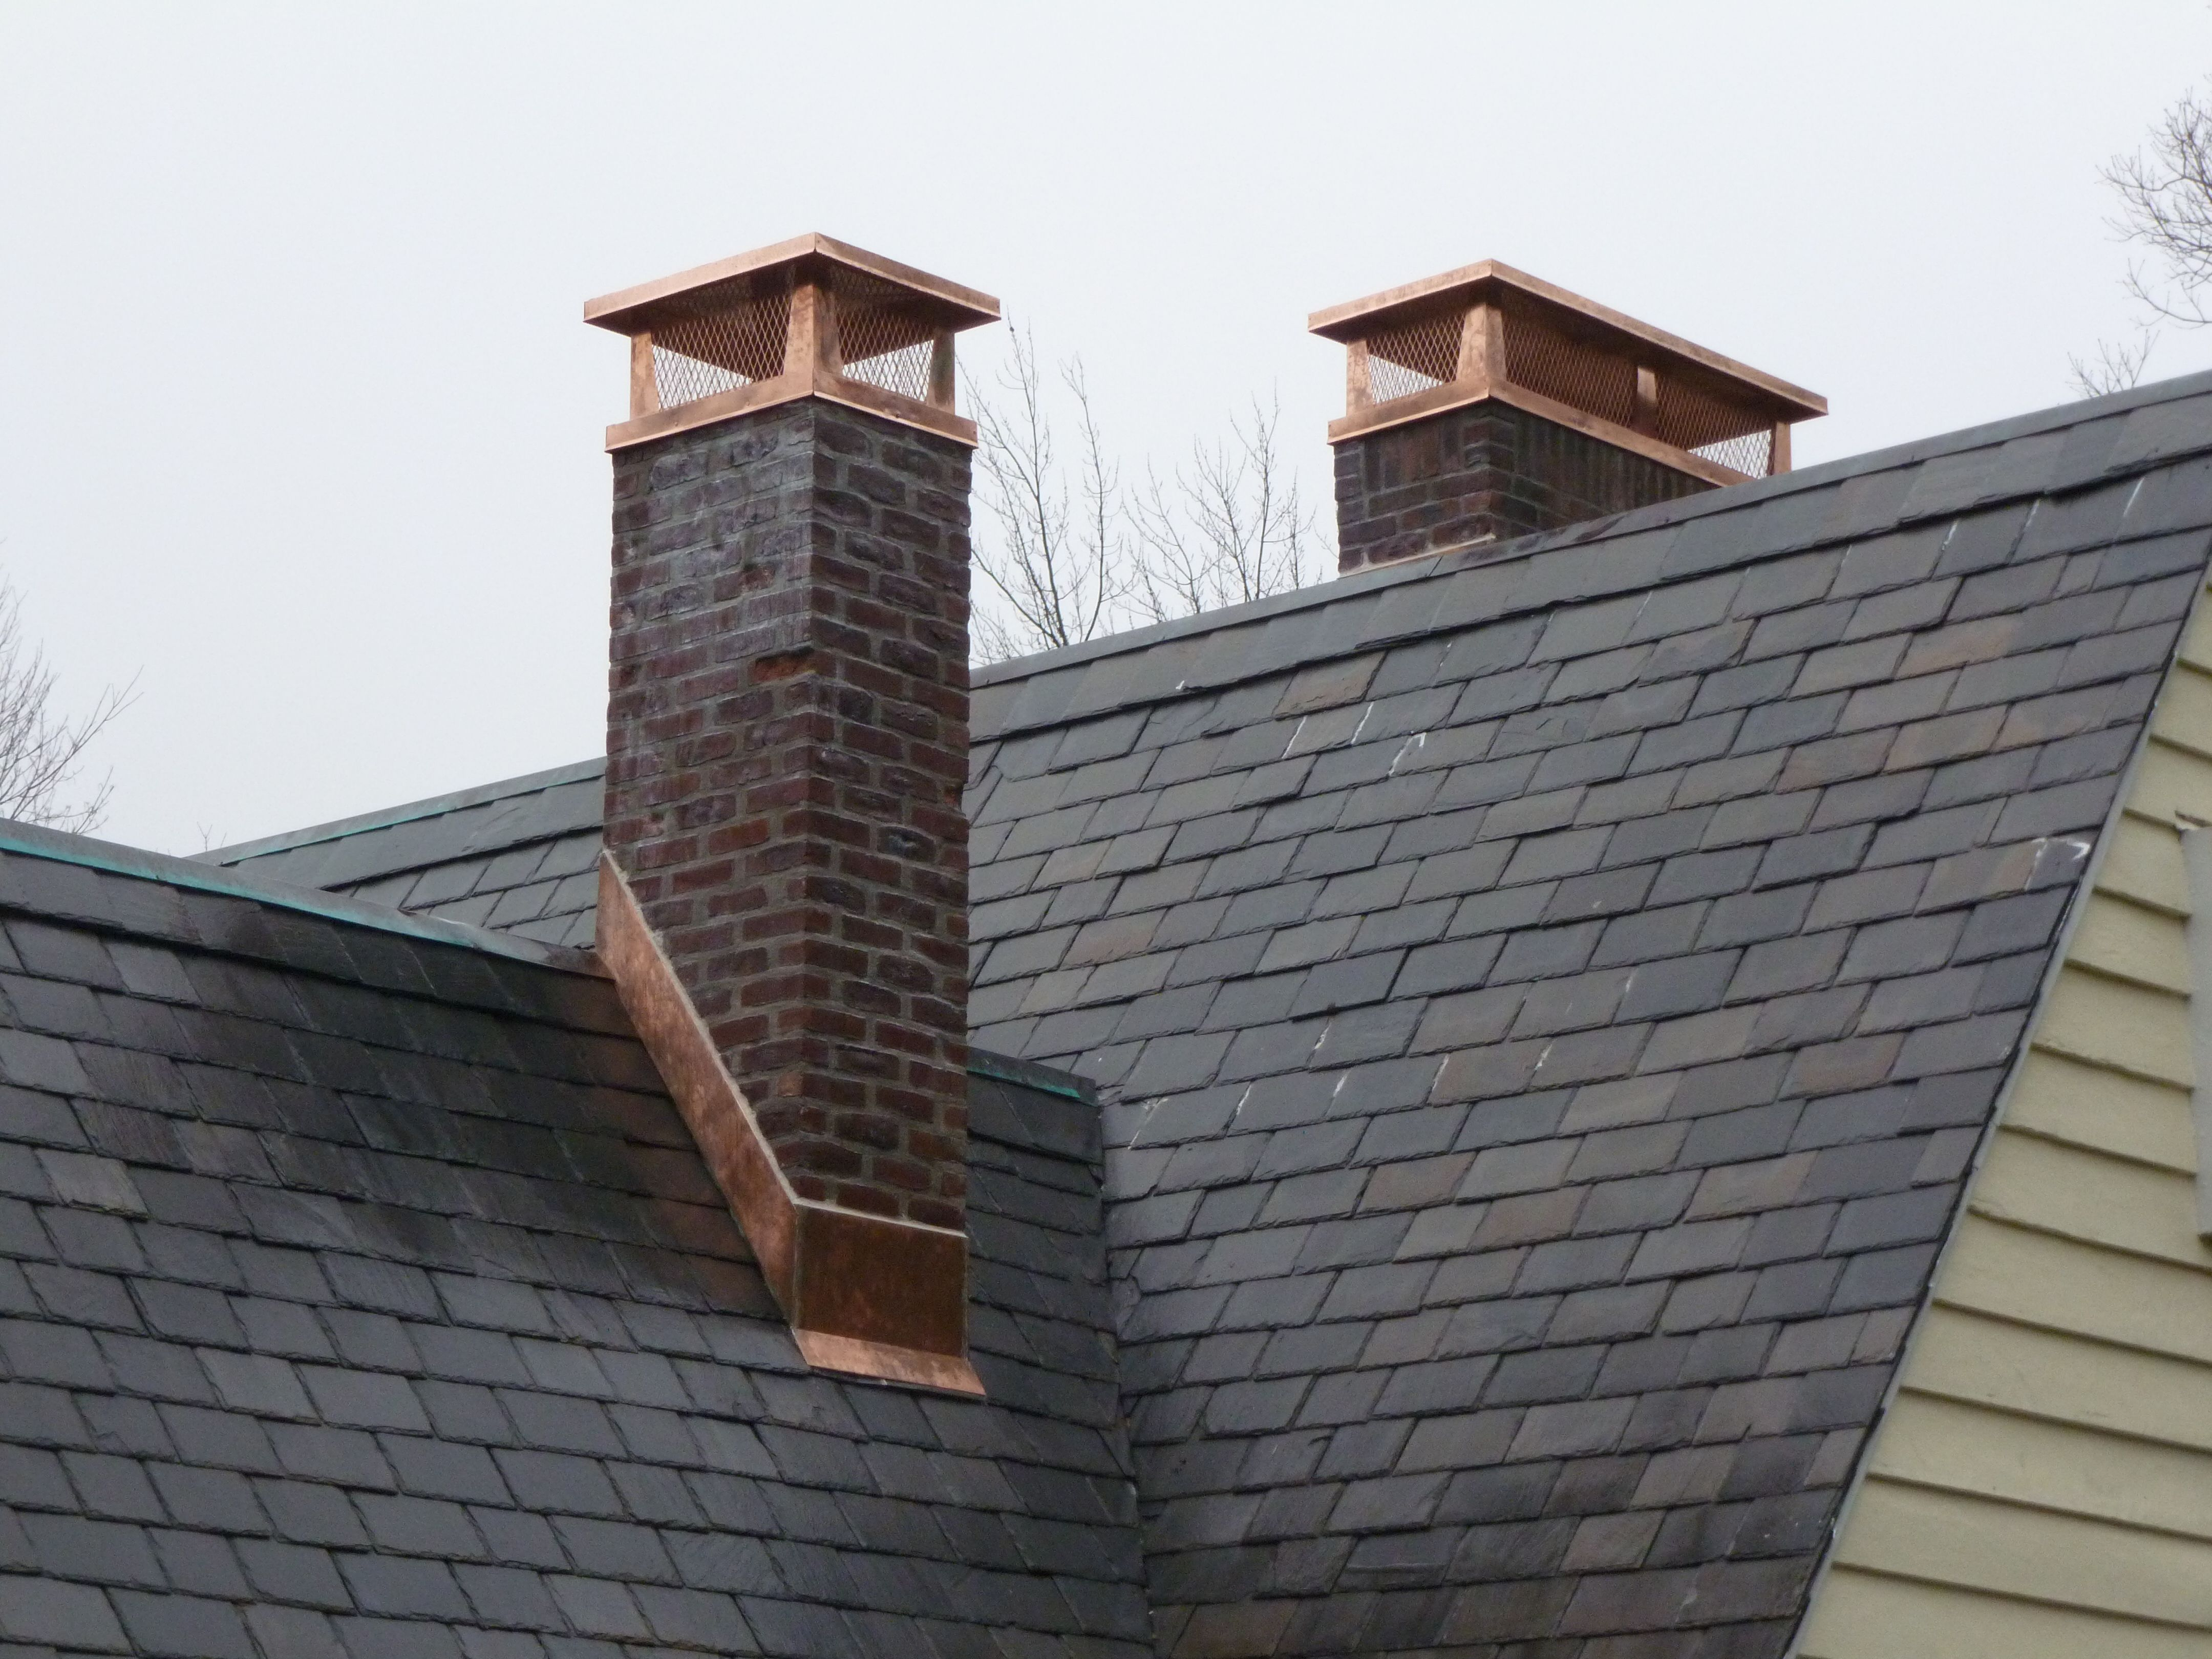 Croton On Hudson Ny Copper Chimney Cap Slate Roof Th Remodeling 1 1 Jpg 4320 3240 Chimney Design Roofing Roofing Options